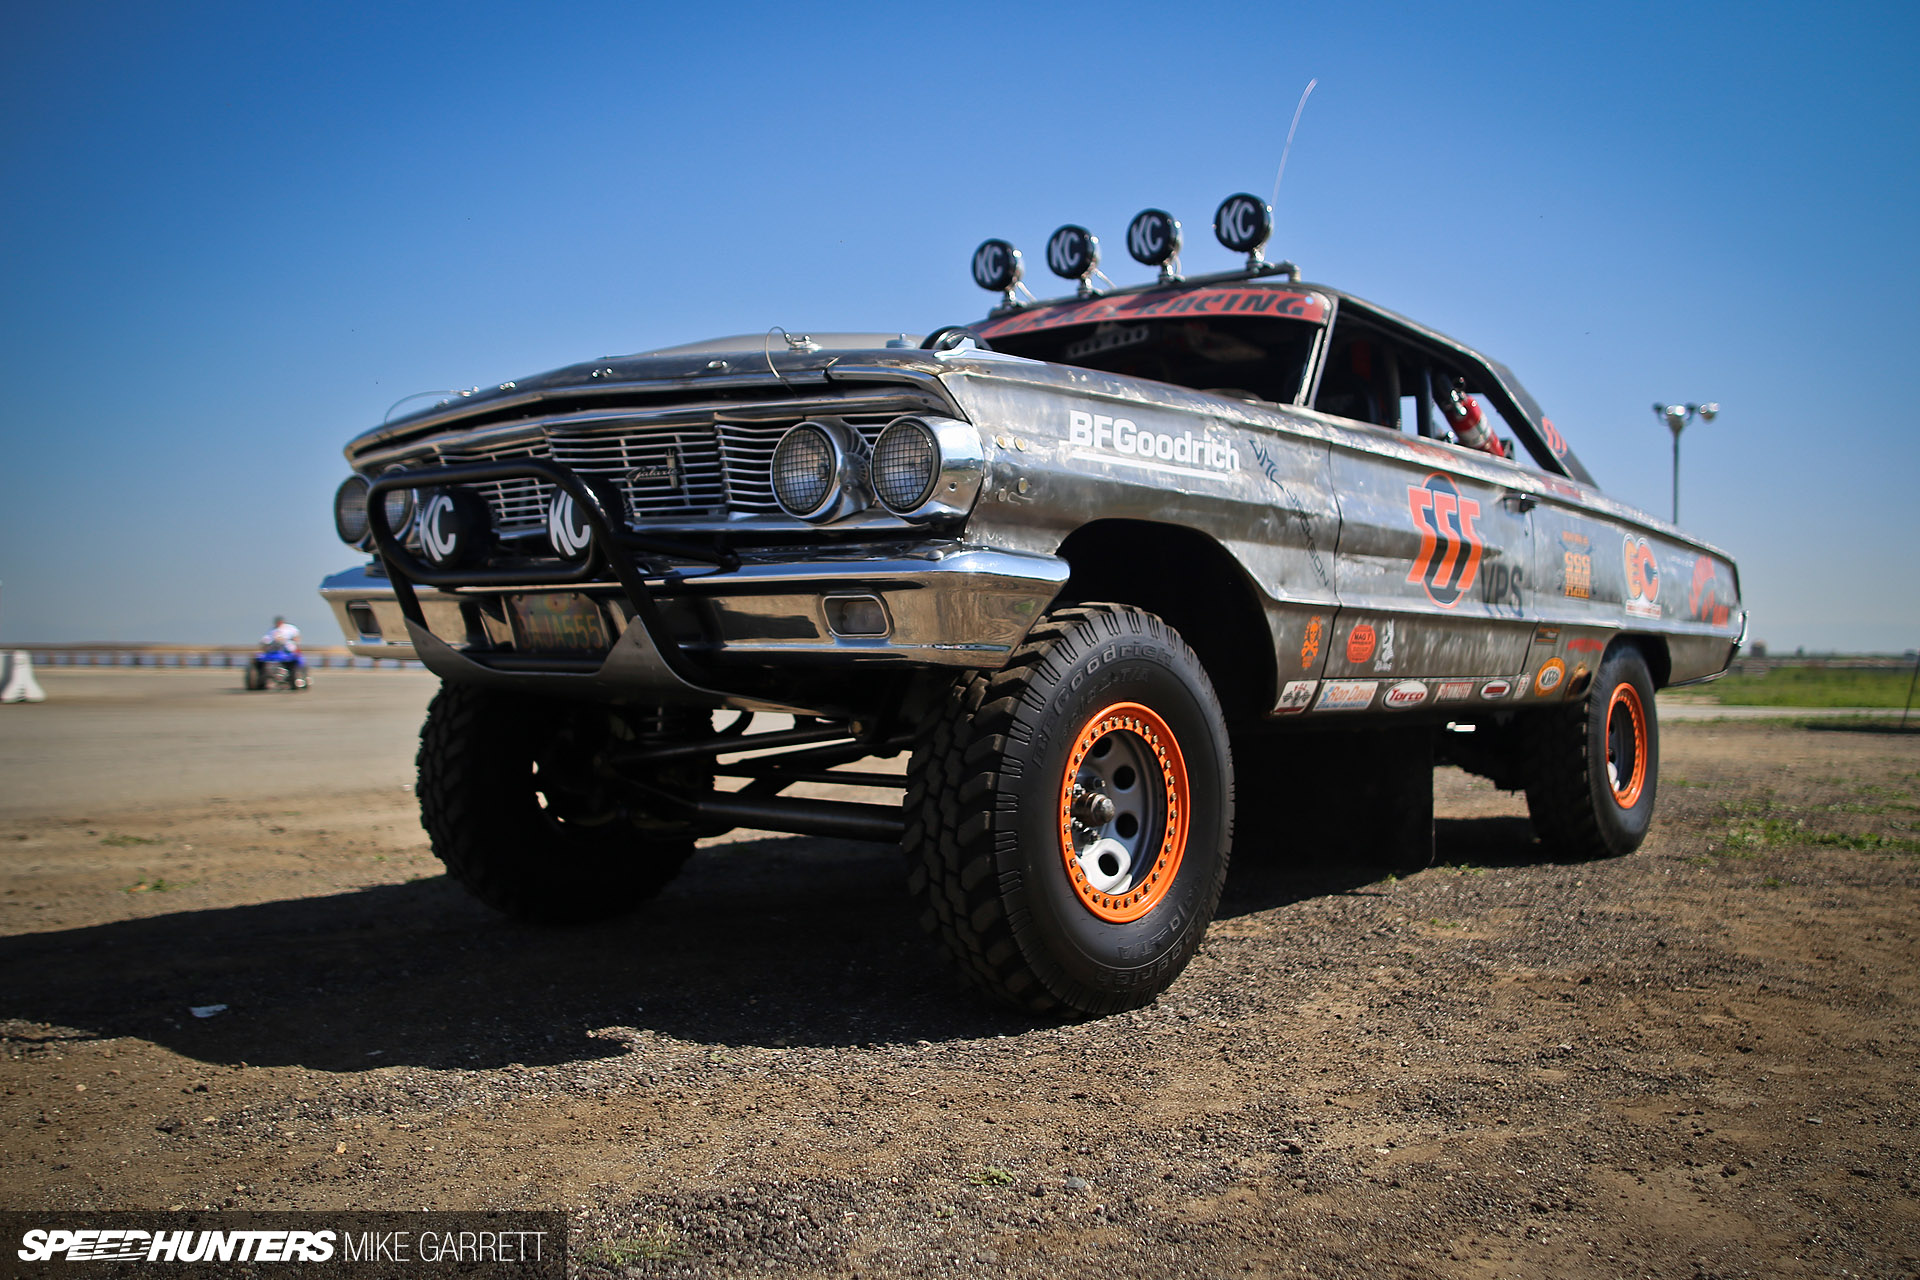 Galaxia De La Baja: Off-Roading In Style - Speedhunters